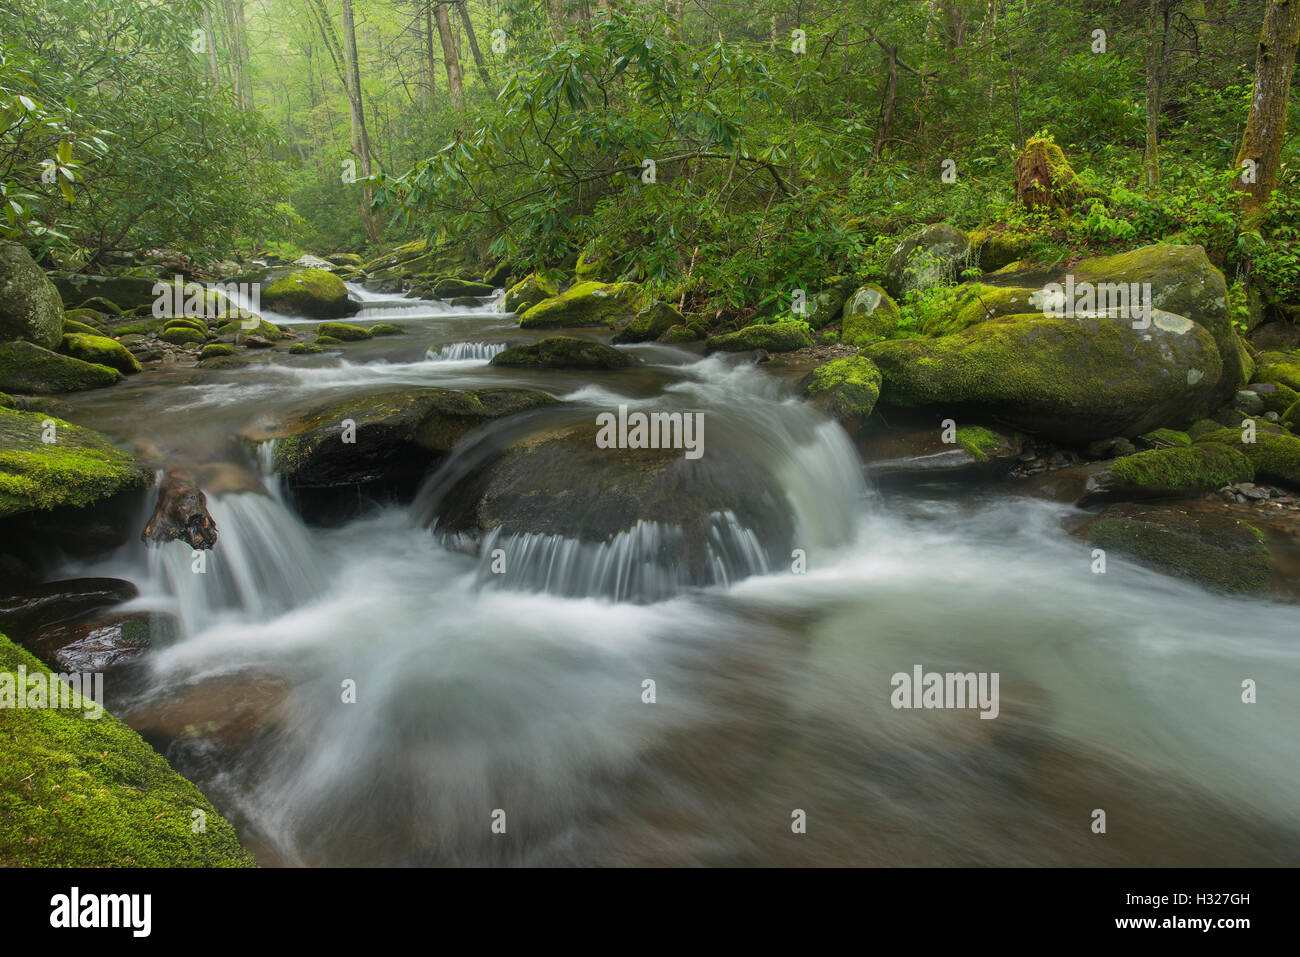 Moss-covered rocks and boulders along Roaring Fork River, Summer, Great Smoky Mountain National Park, Tennessee - Stock Image